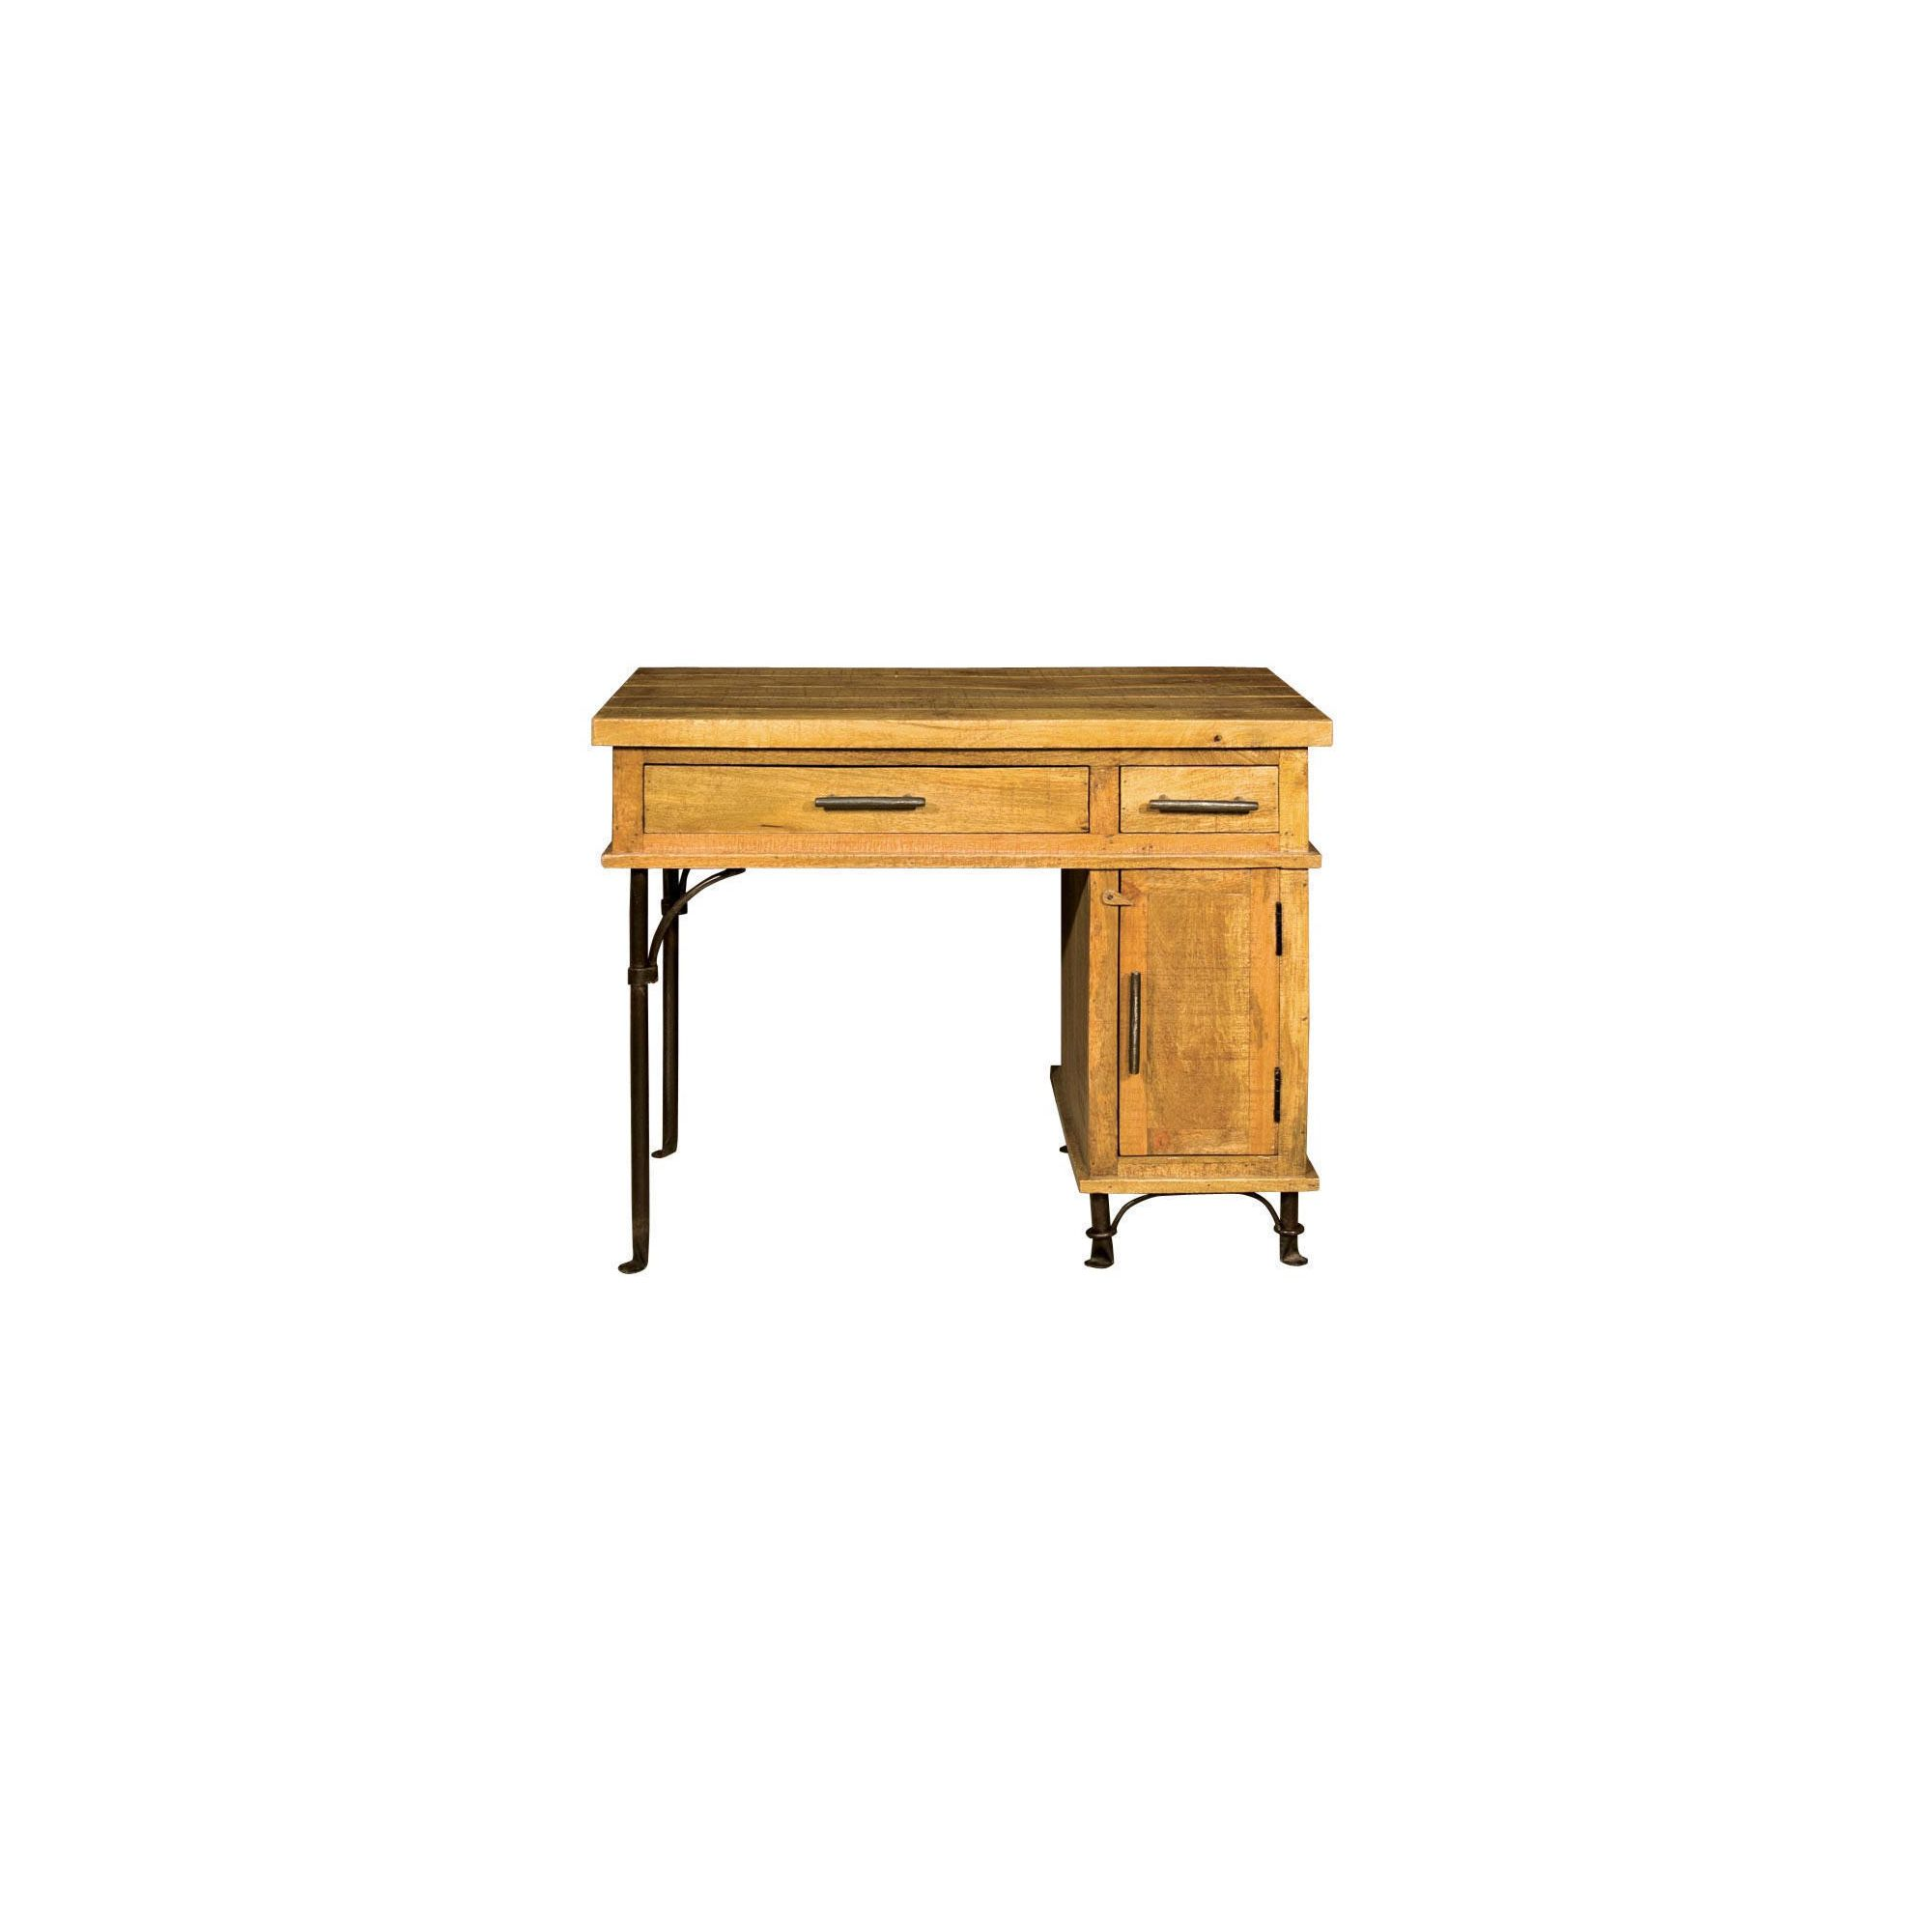 Alterton Furniture Rutland Forge Pedestal Desk at Tescos Direct